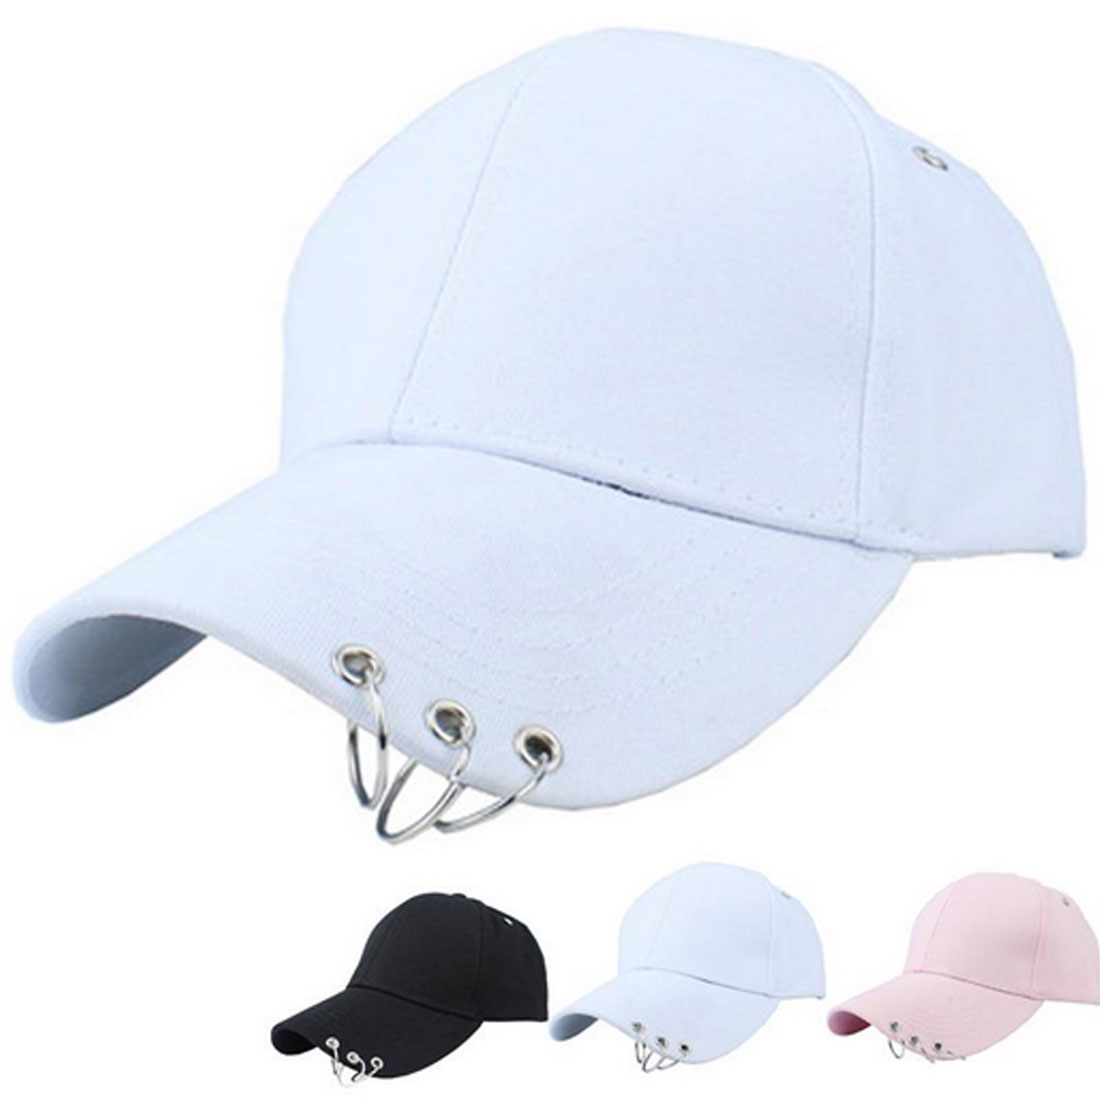 New Lovers Four seasons Cotton wild rings letter youth baseball cap Korean fashion couple personality